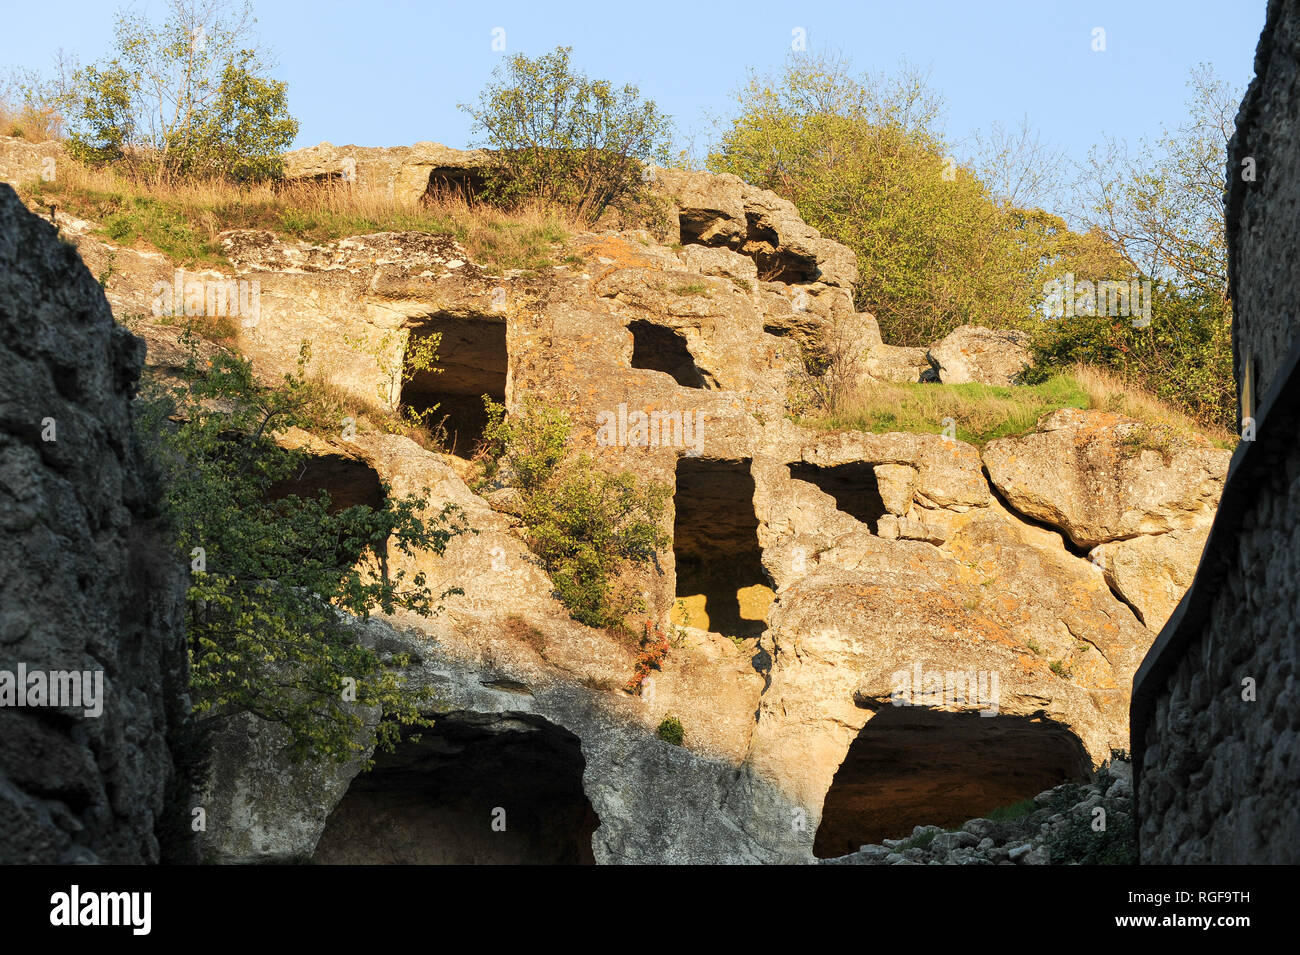 Medieval city-fortress Çufut Qale (Jewish Fortress) in the Crimean Mountain in Chufut-Kale, near Bakhchisaray, Crimea, Ukraine. October 2nd 2008, esta Stock Photo